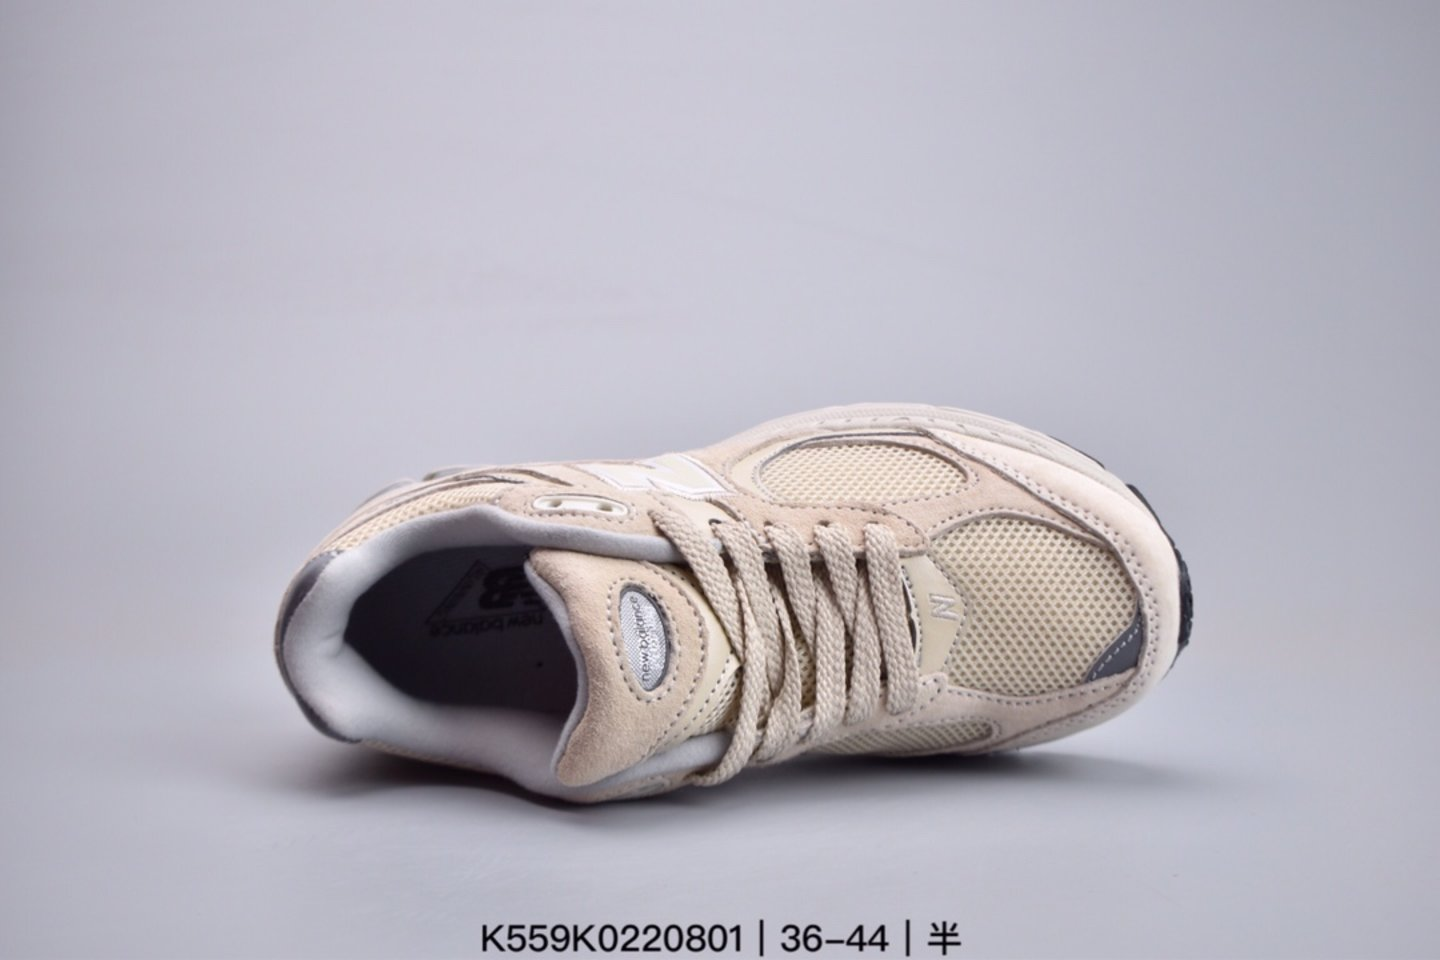 New Balance 2002 fashion casual shoes running shoes inside of